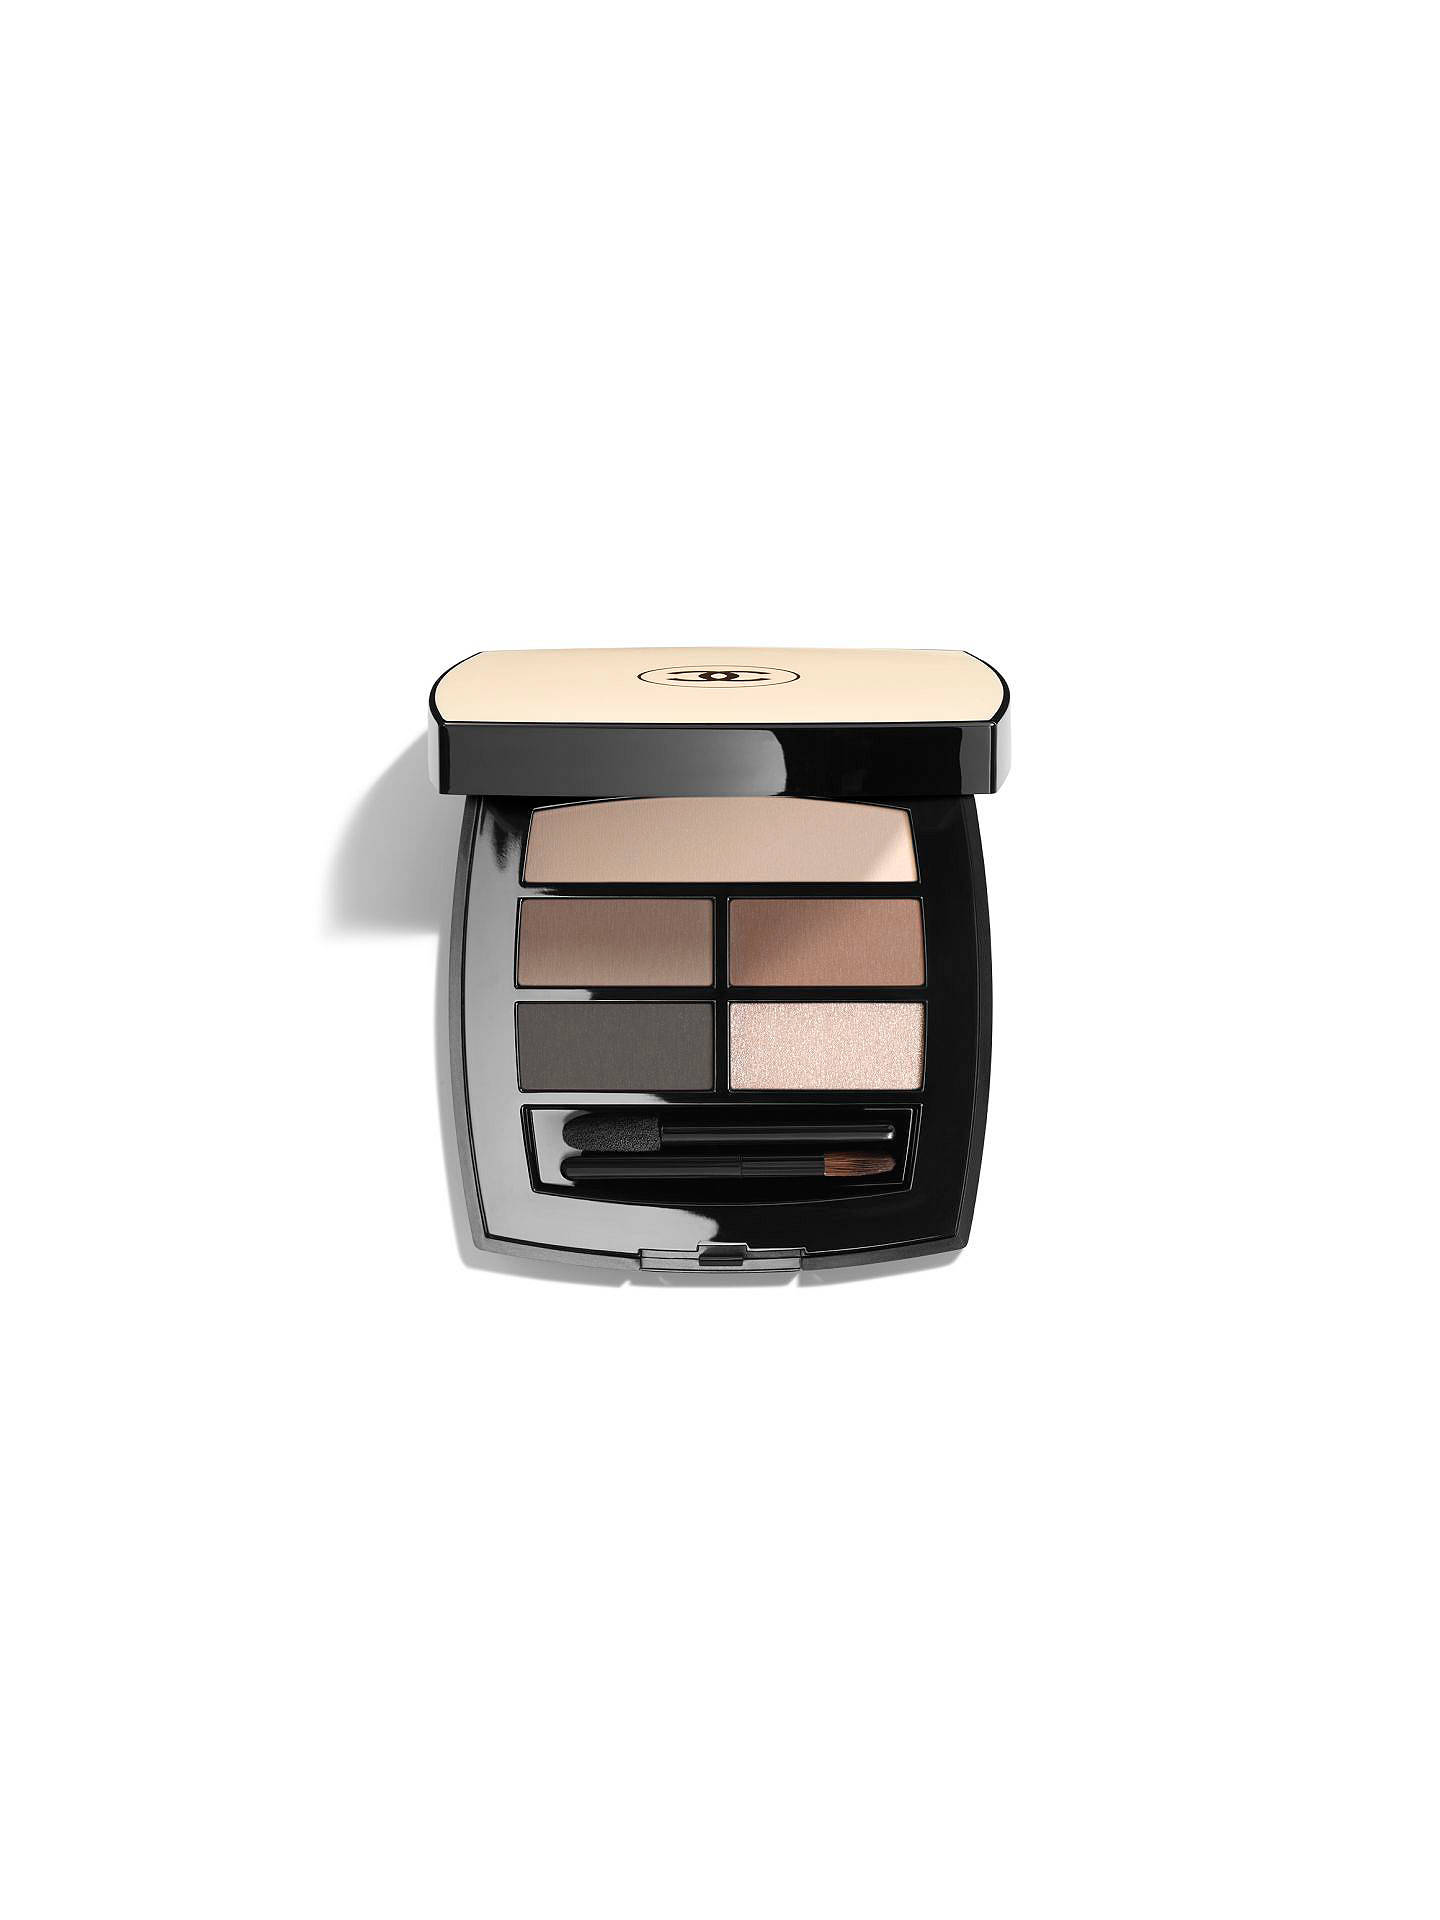 Buy CHANEL Les Beiges Healthy Glow Natural Eyeshadow Palette, Medium Online at johnlewis.com